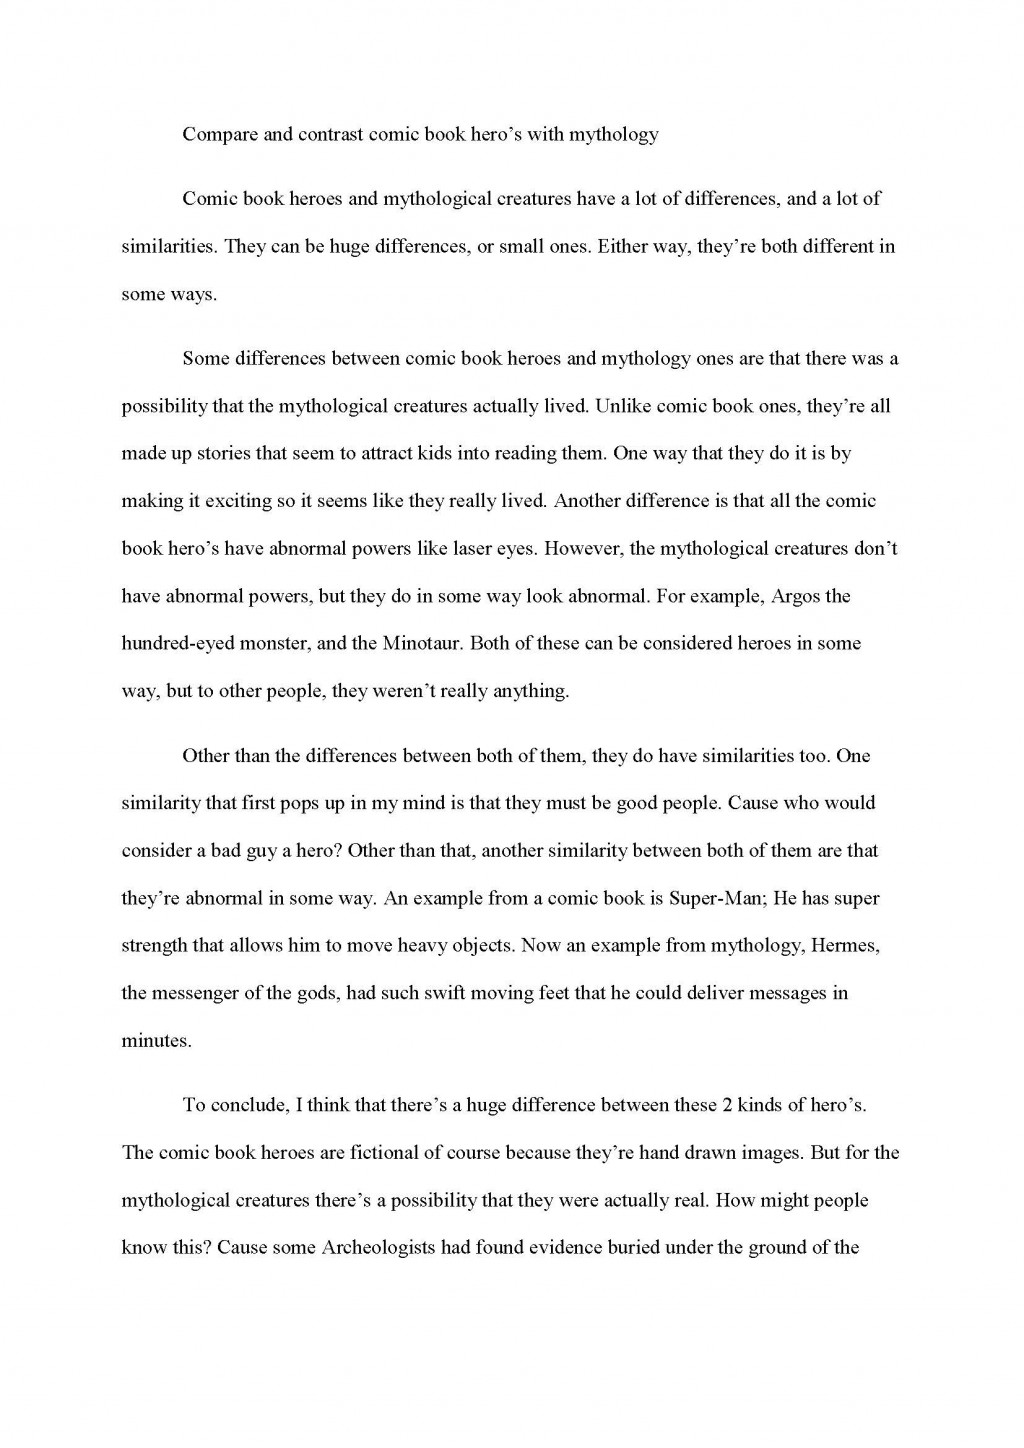 002 Compare And Contrast Essay Sample Essays Awful Free Examples For College Topics Middle School Large